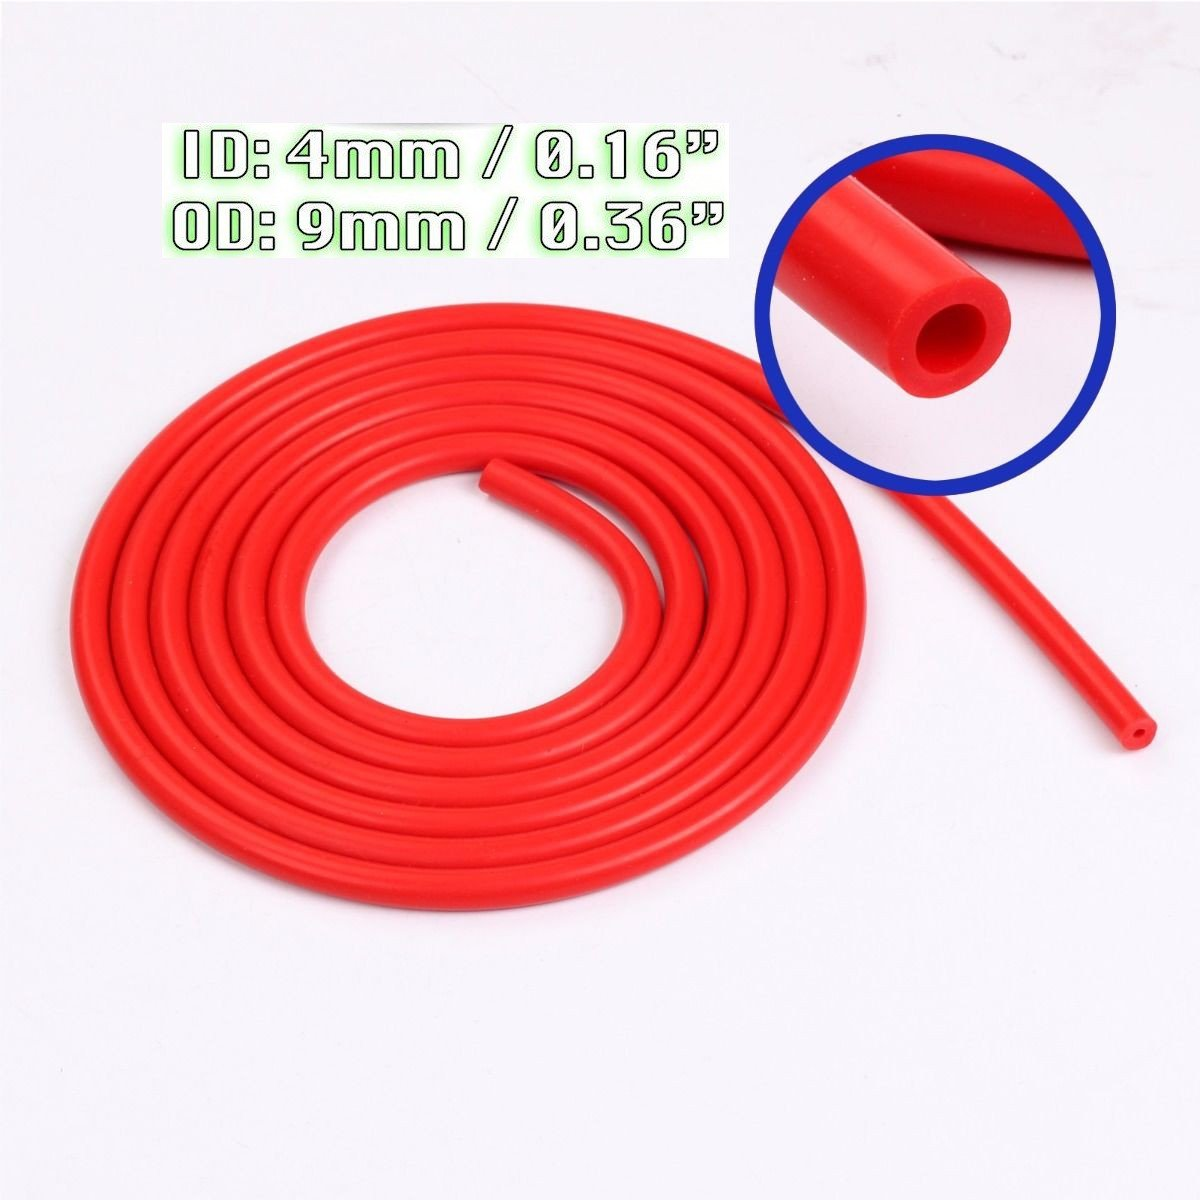 Ronben Car Engine 4mm Silicone Vacuum Tube Hose Silicon Tubing 16.4ft 5 Meters Kit (Blue) oem HS-004